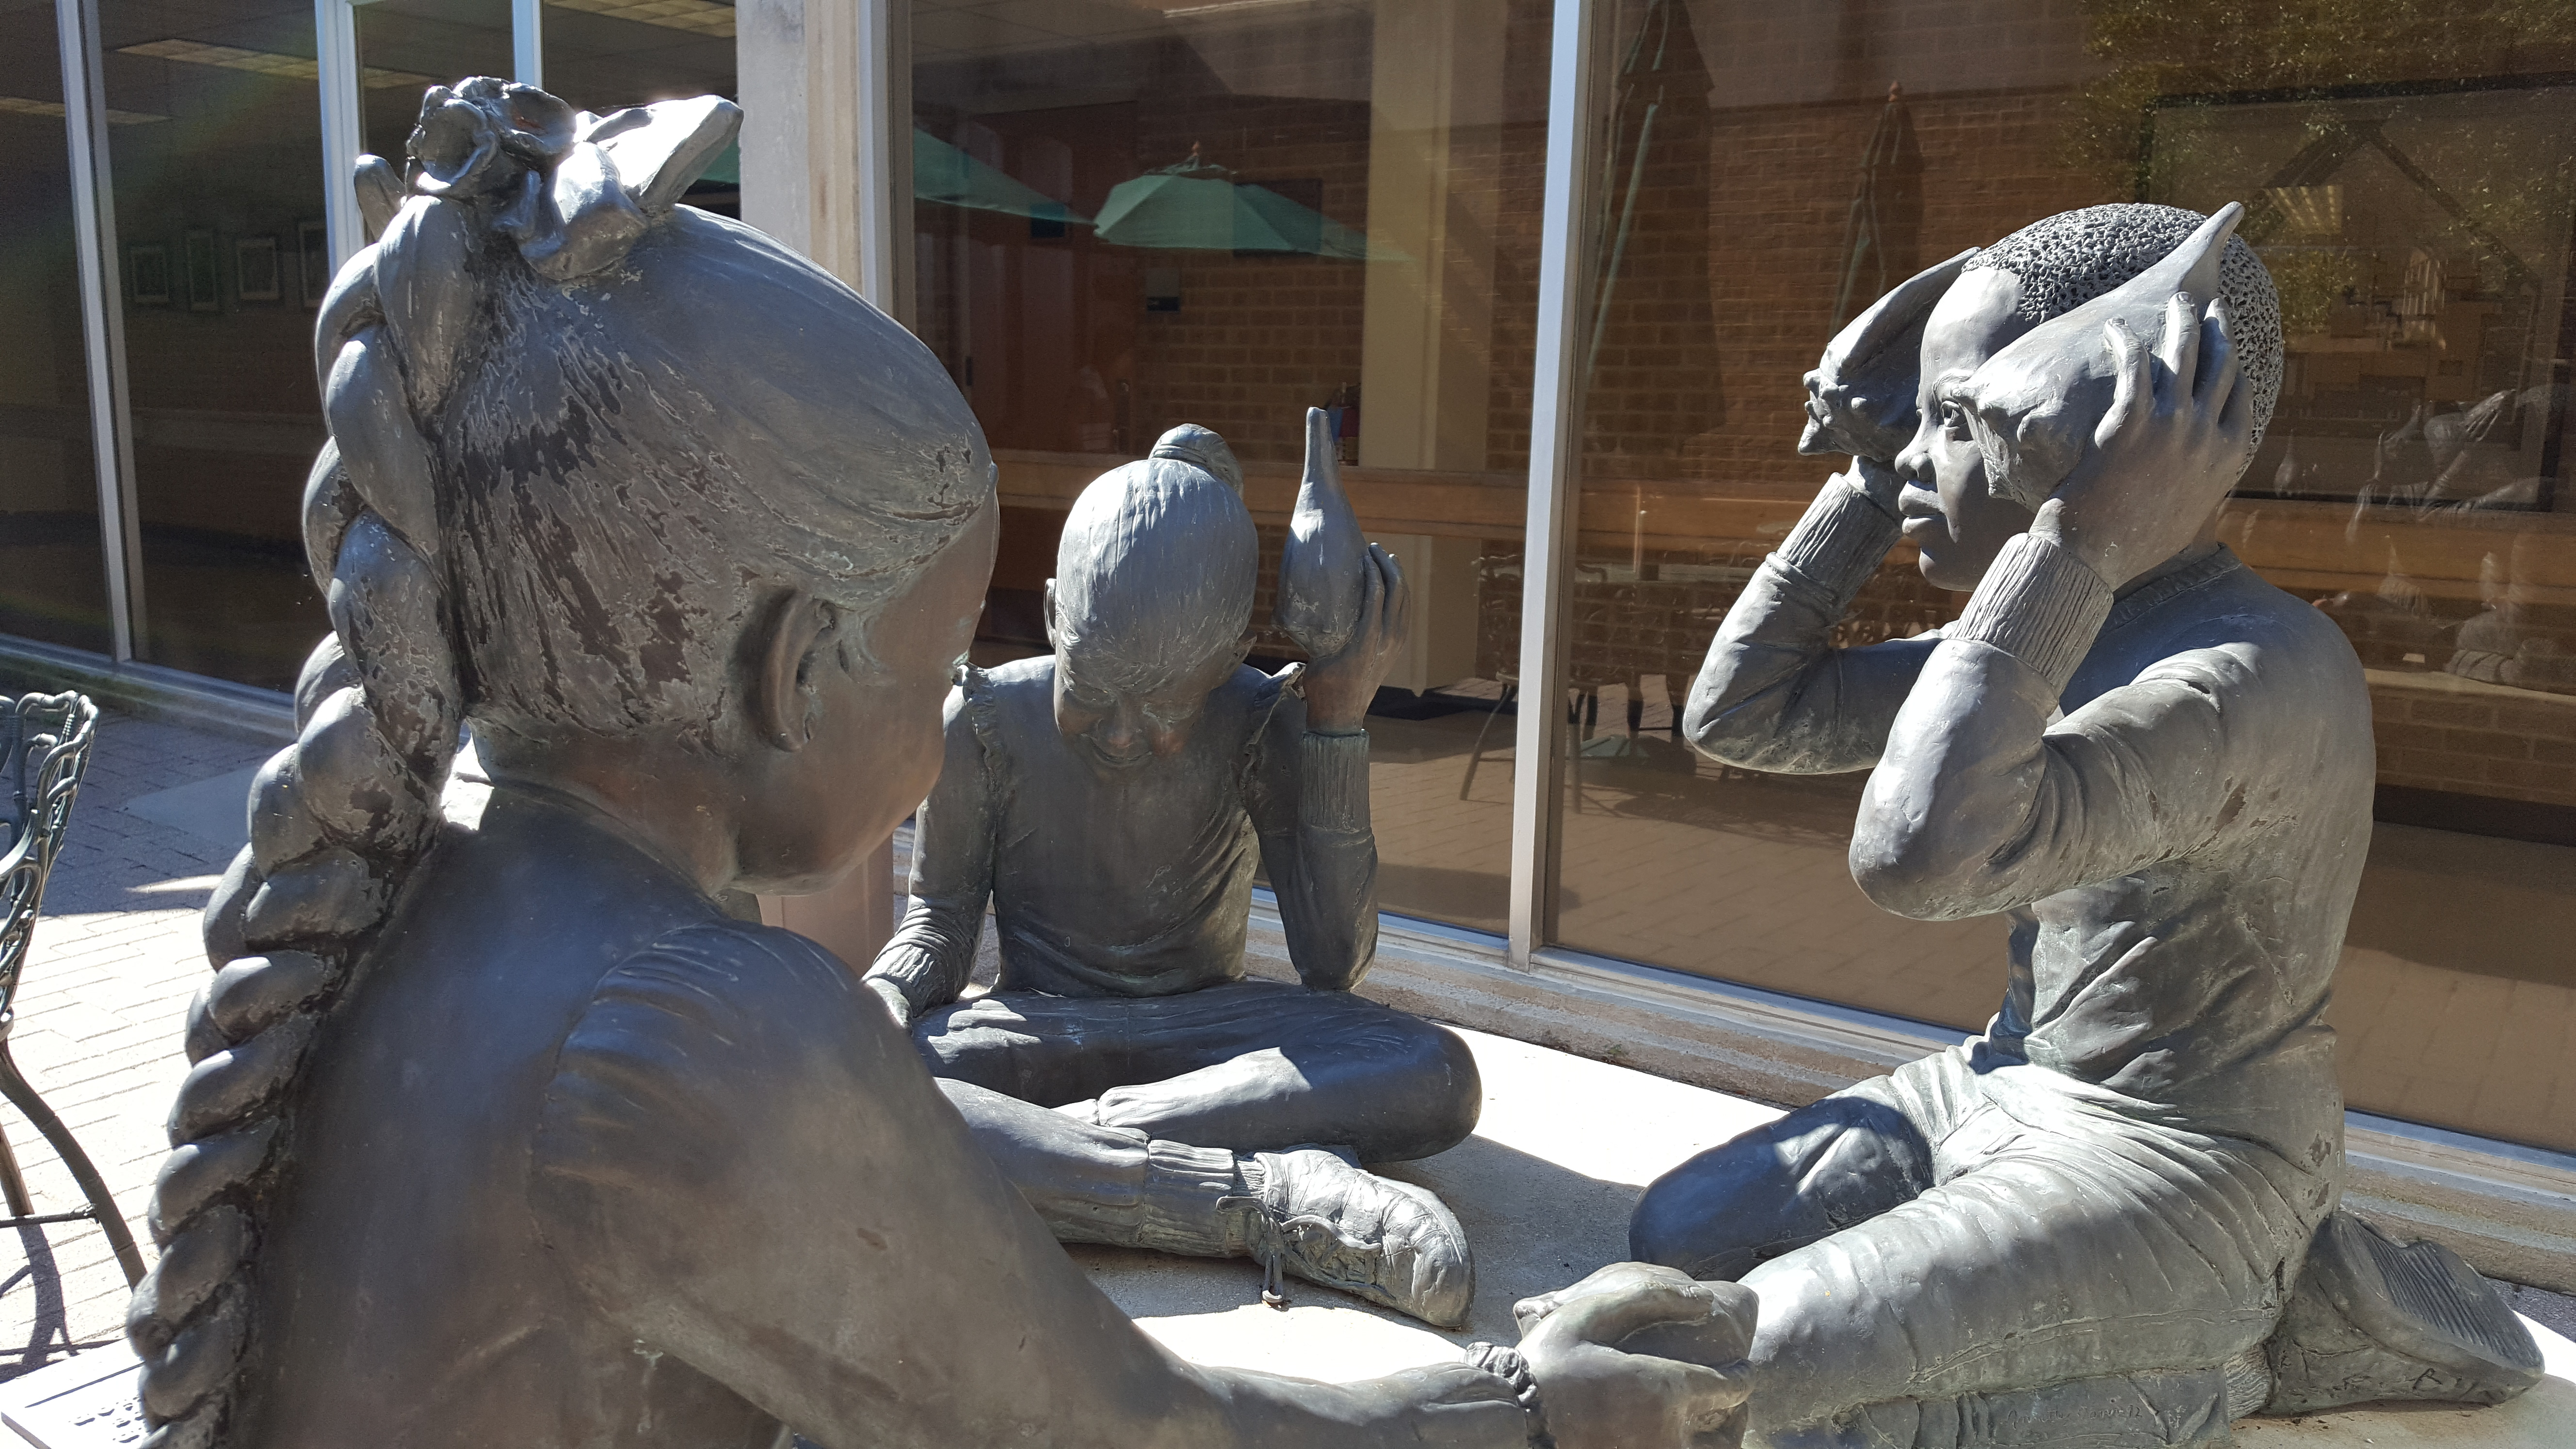 Photograph of the sculpture found in the Calier Center Atrium. Three children play with seashells against their ears and mouths.